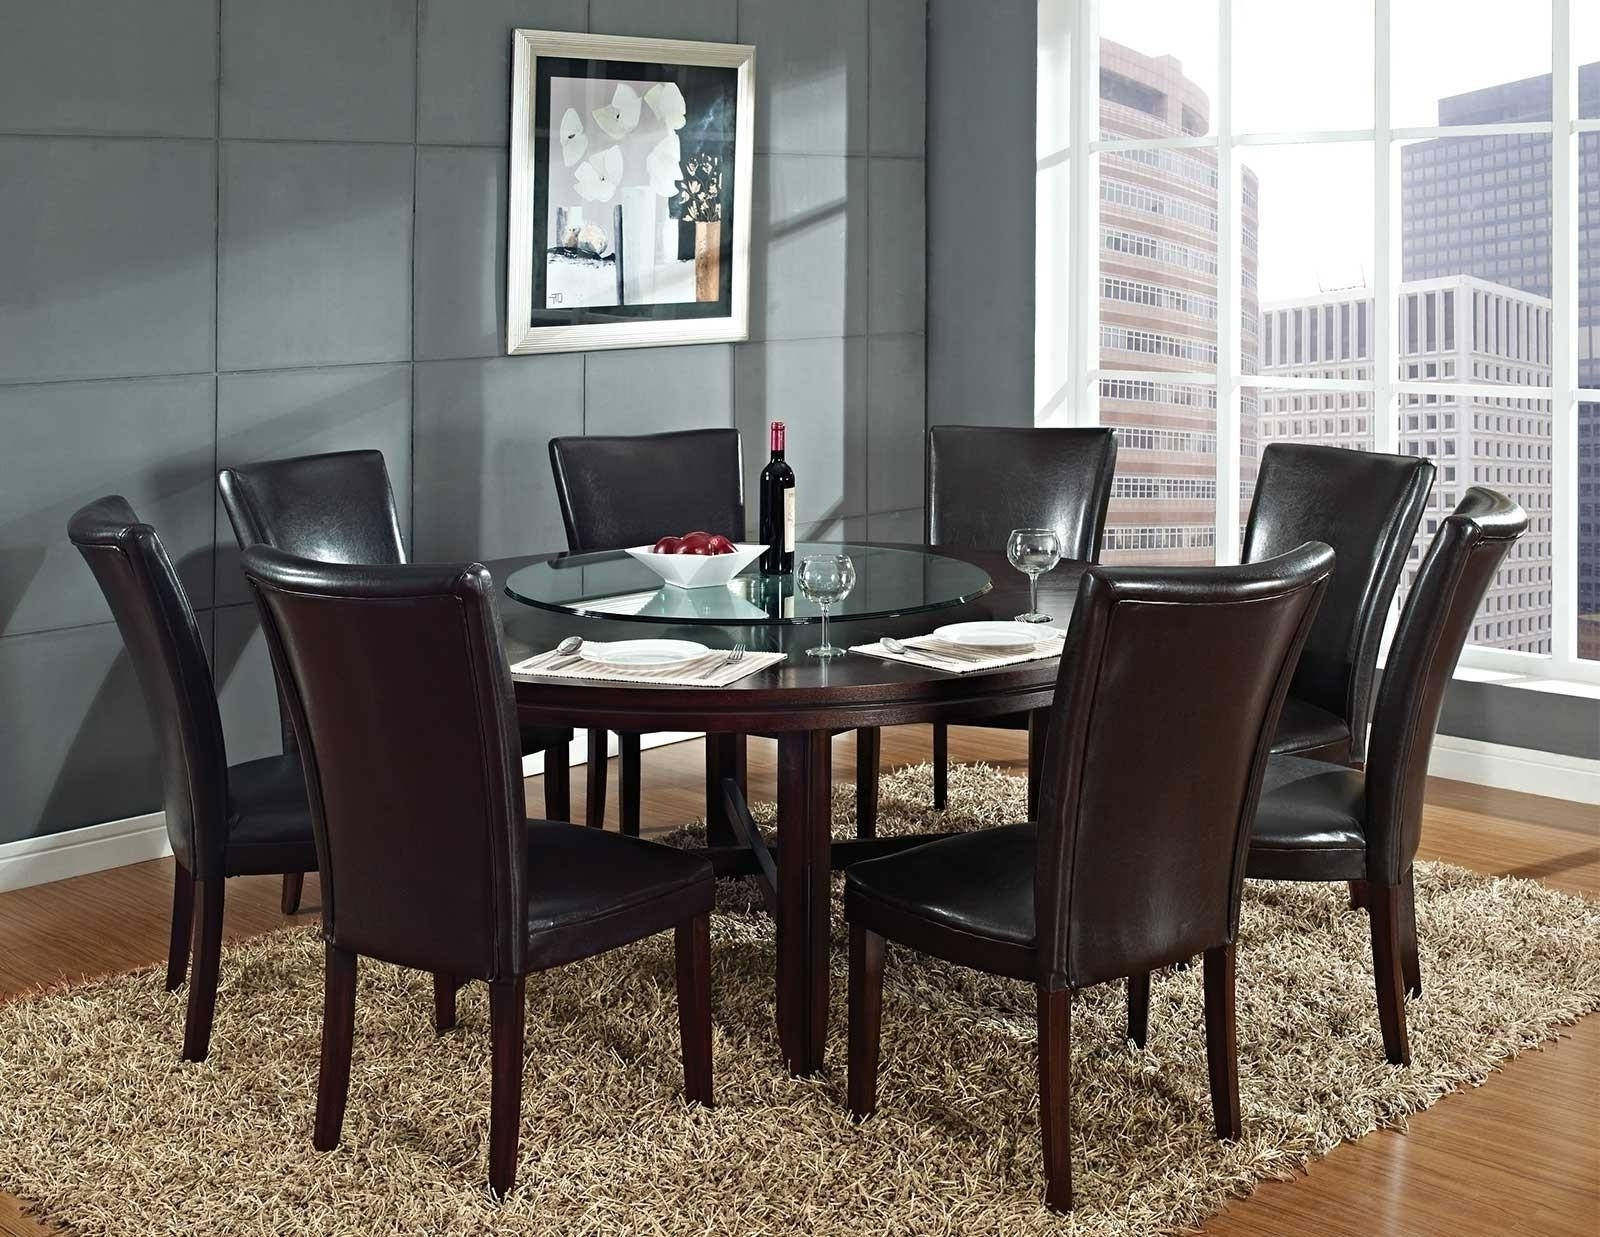 Widely Used Caira Black Round Dining Tables Inside Large Pedestal Dining Table Unique Round Dining Table Unique Awesome (View 25 of 25)